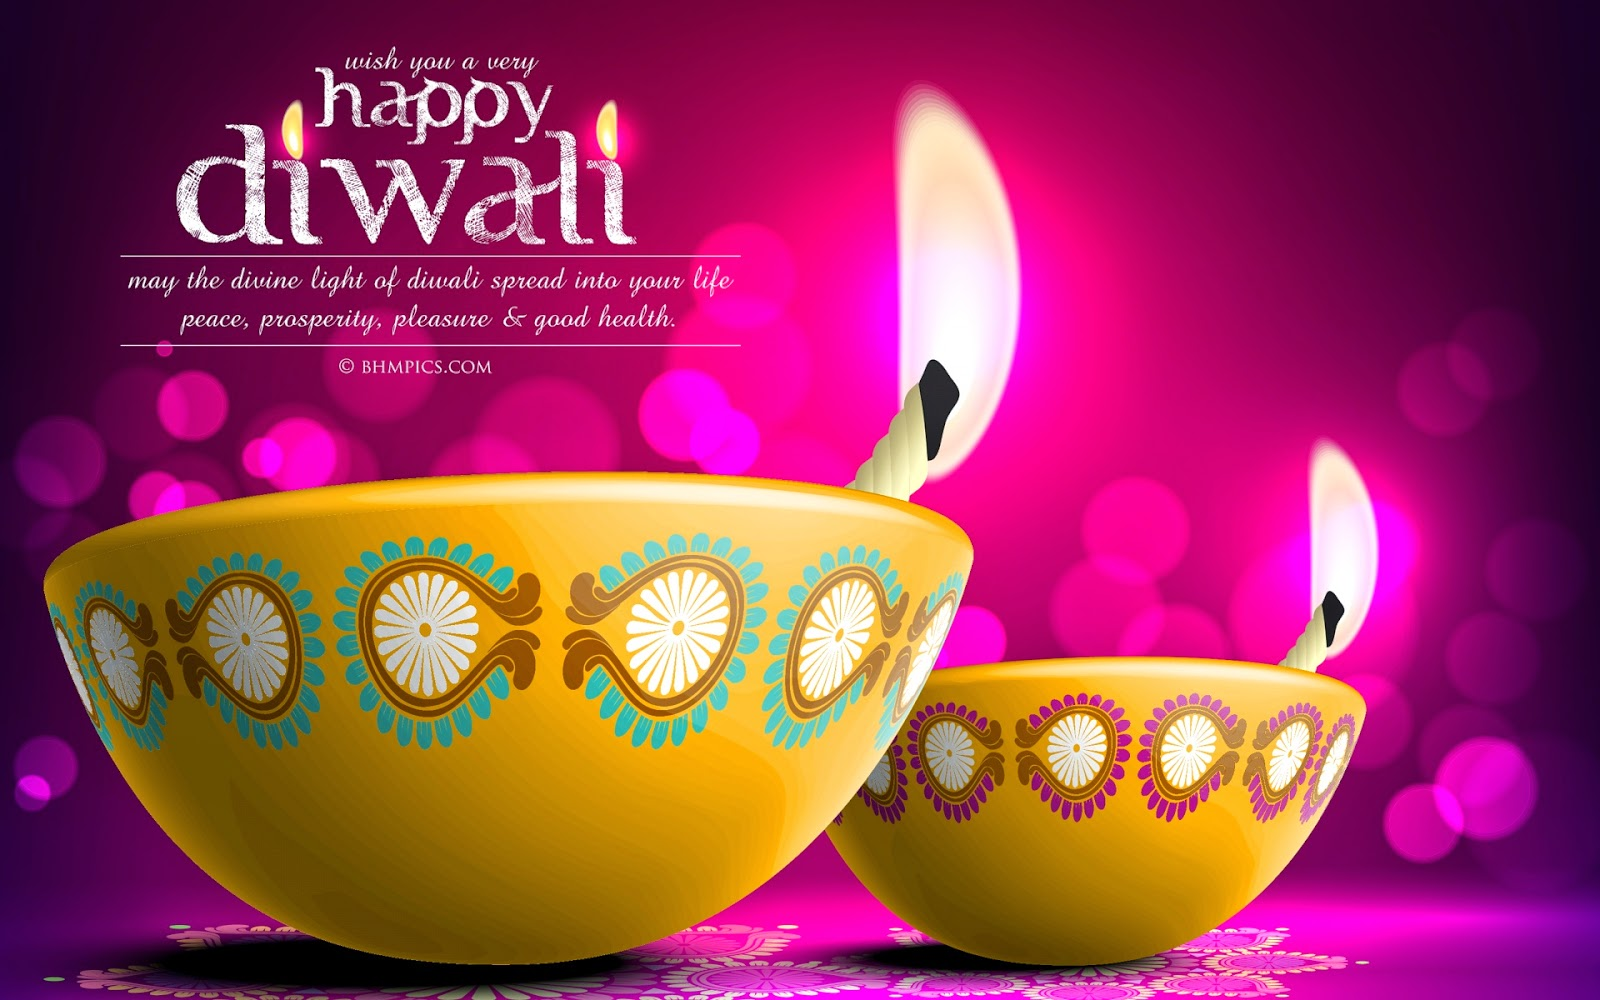 Happy Diwali 2018 Images Photos Wishes Sms Wallpapers